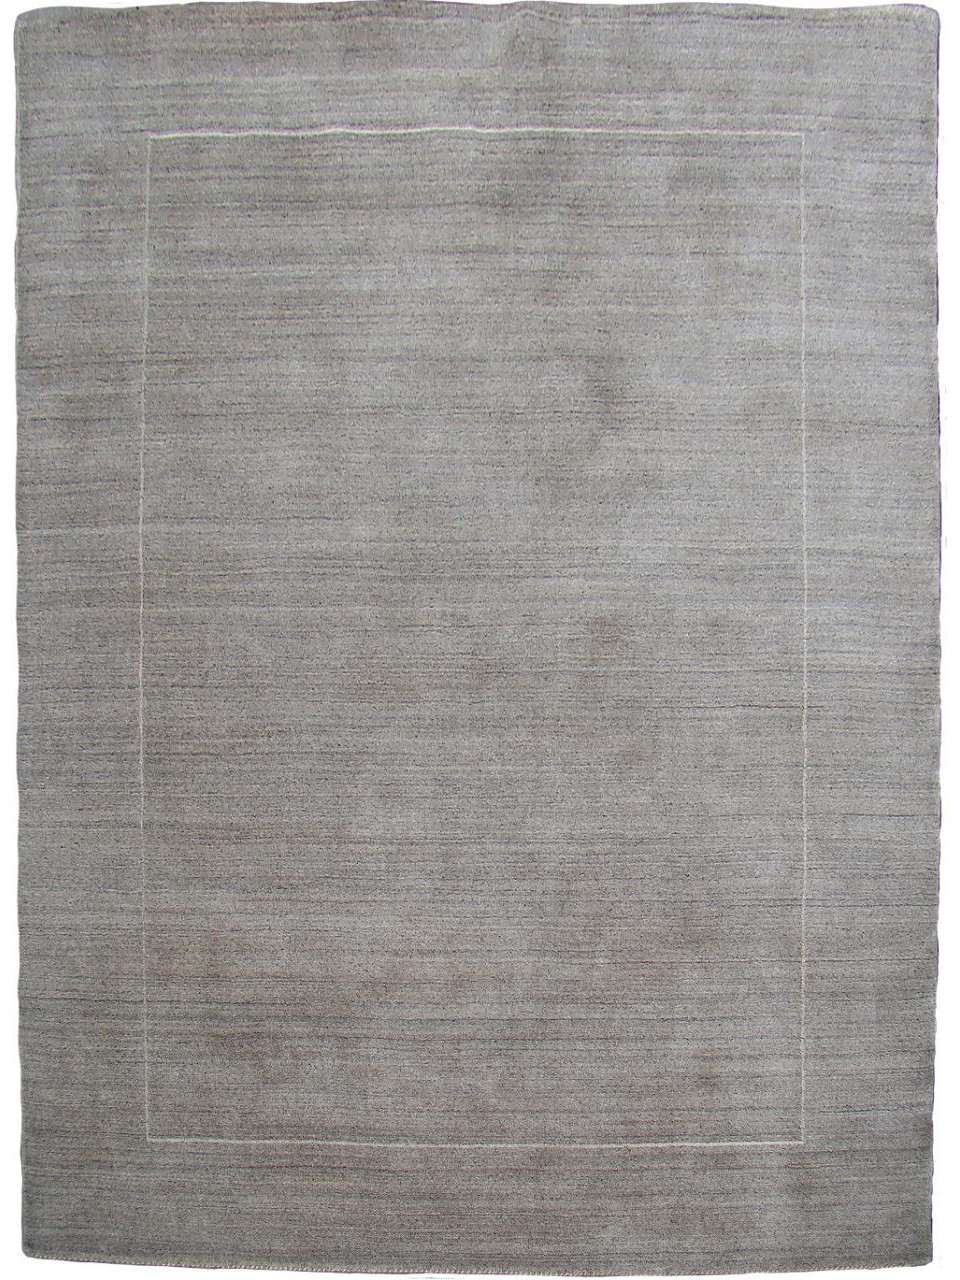 003 gris clair tapis unis n 1088 300x200cm. Black Bedroom Furniture Sets. Home Design Ideas